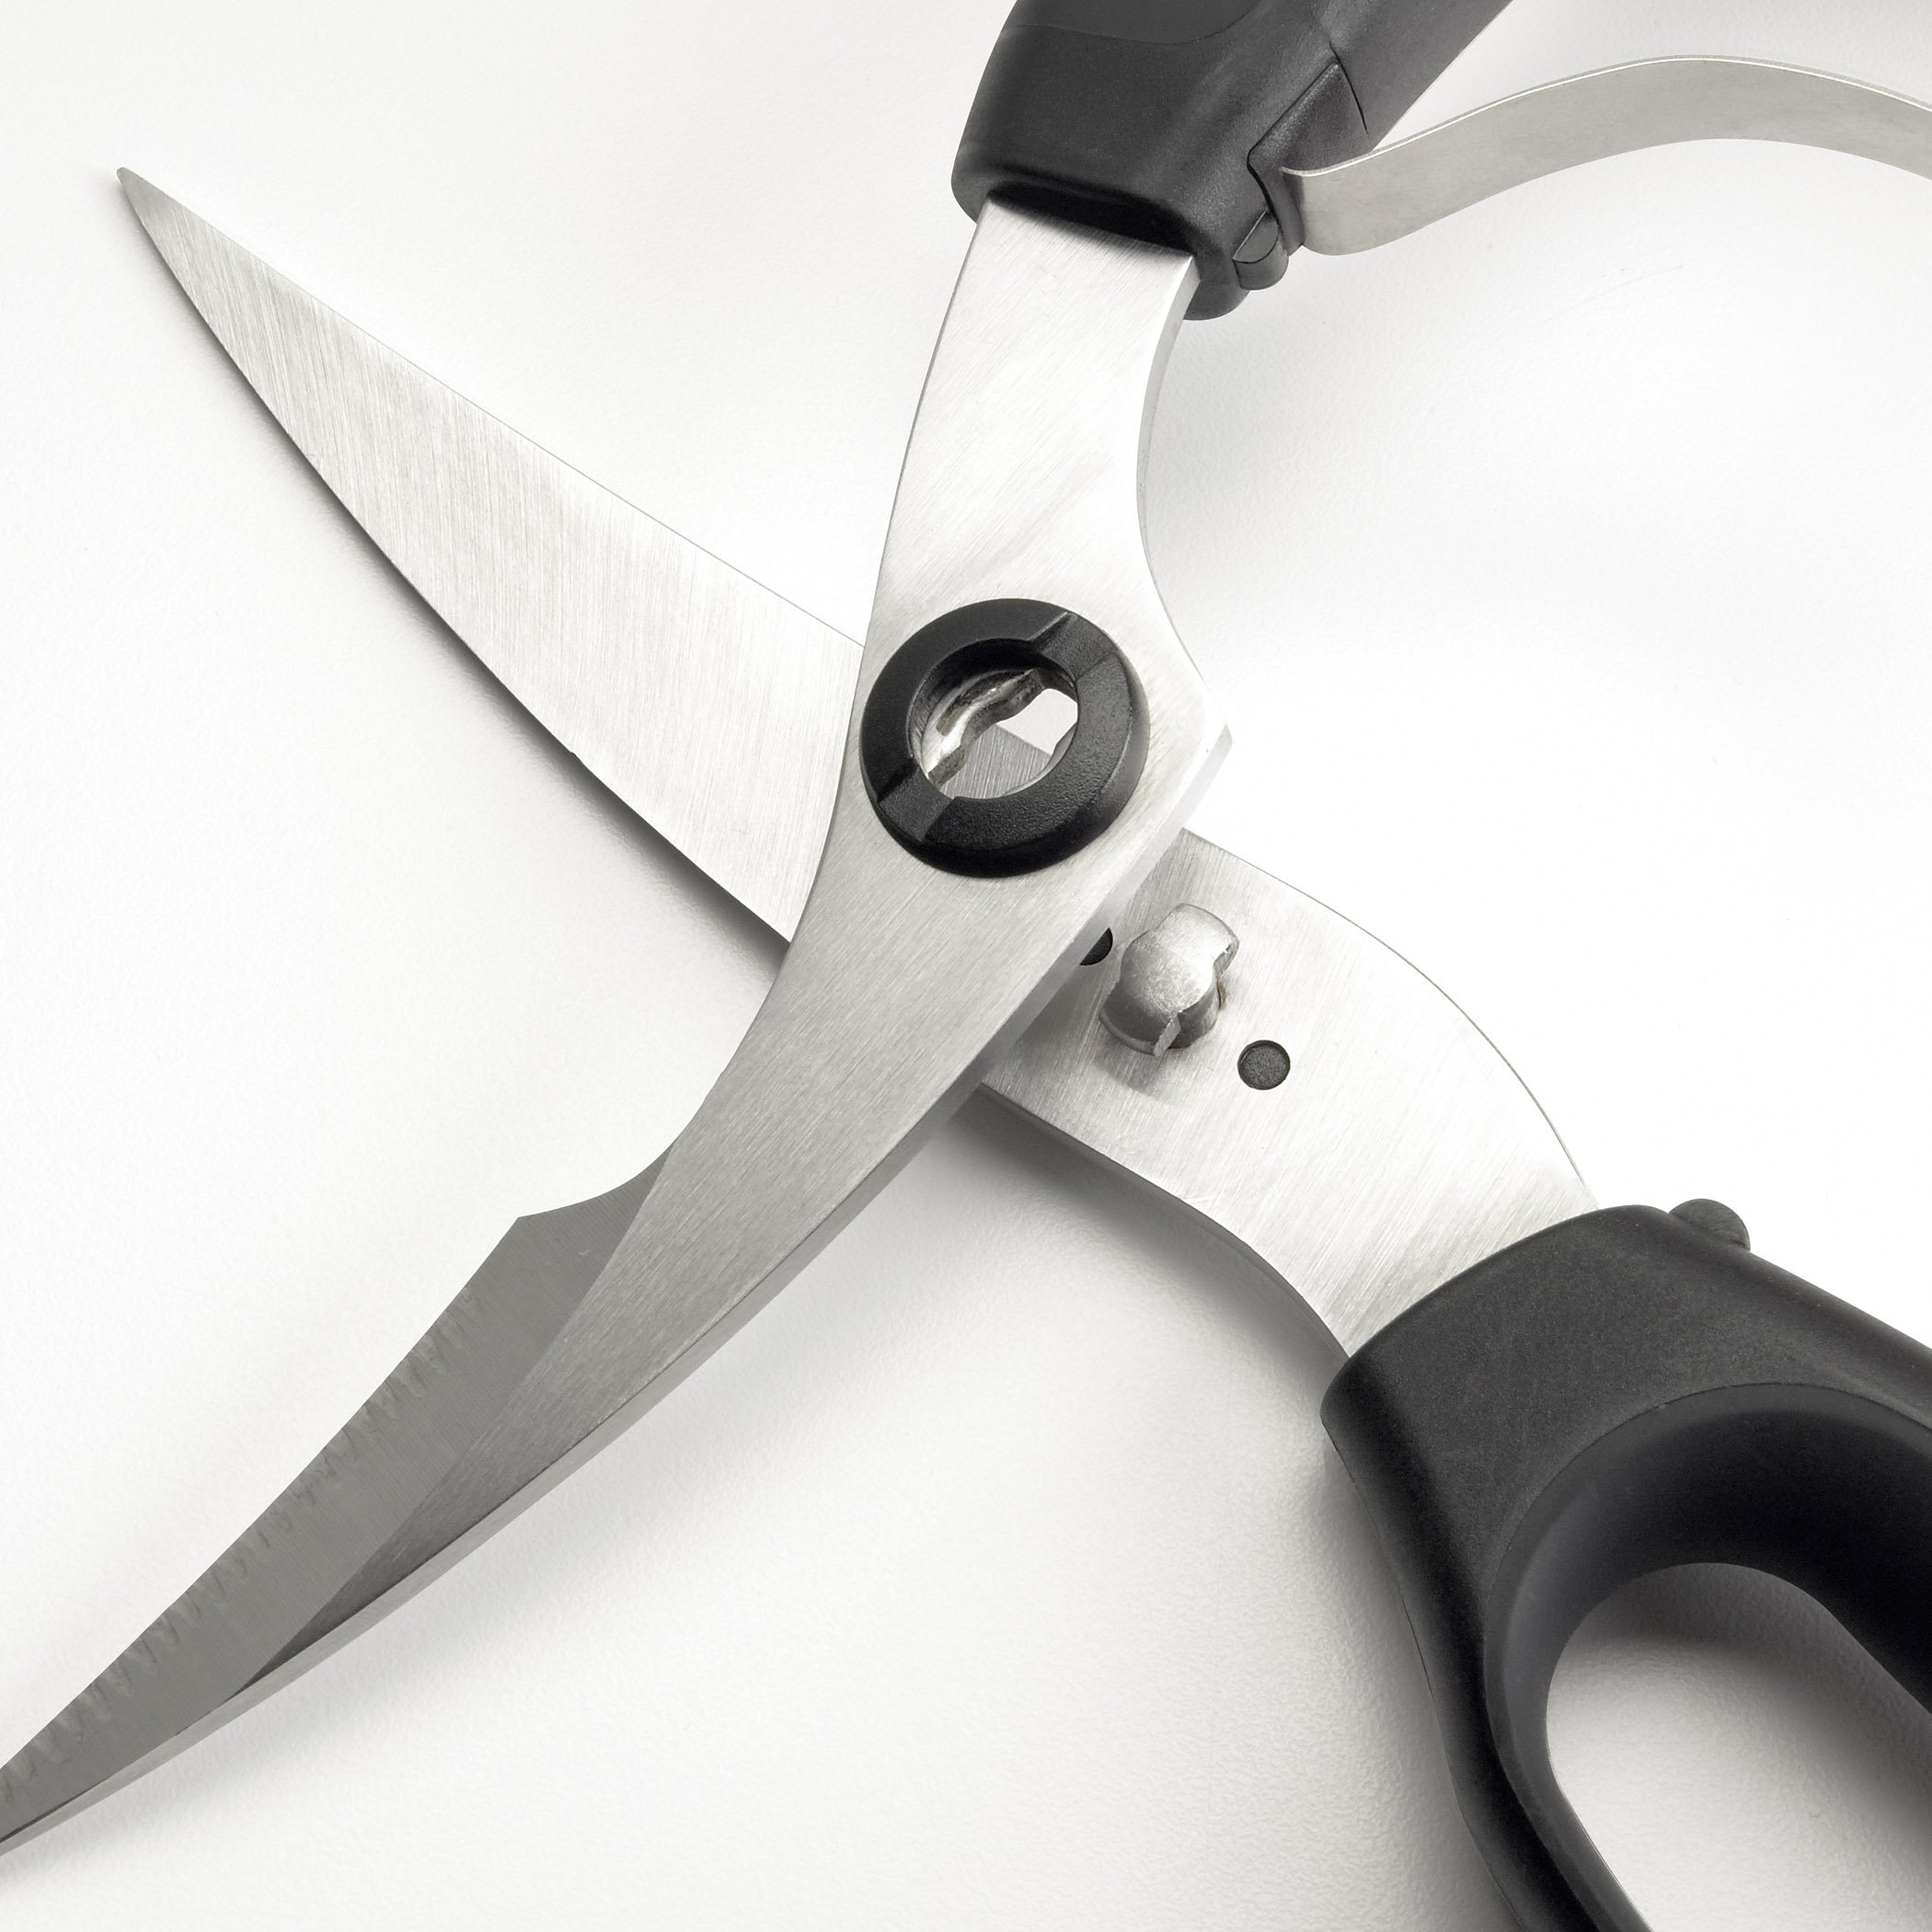 OXO Good Grips Spring-Loaded Poultry Shears, Black by OXO (Image #5)